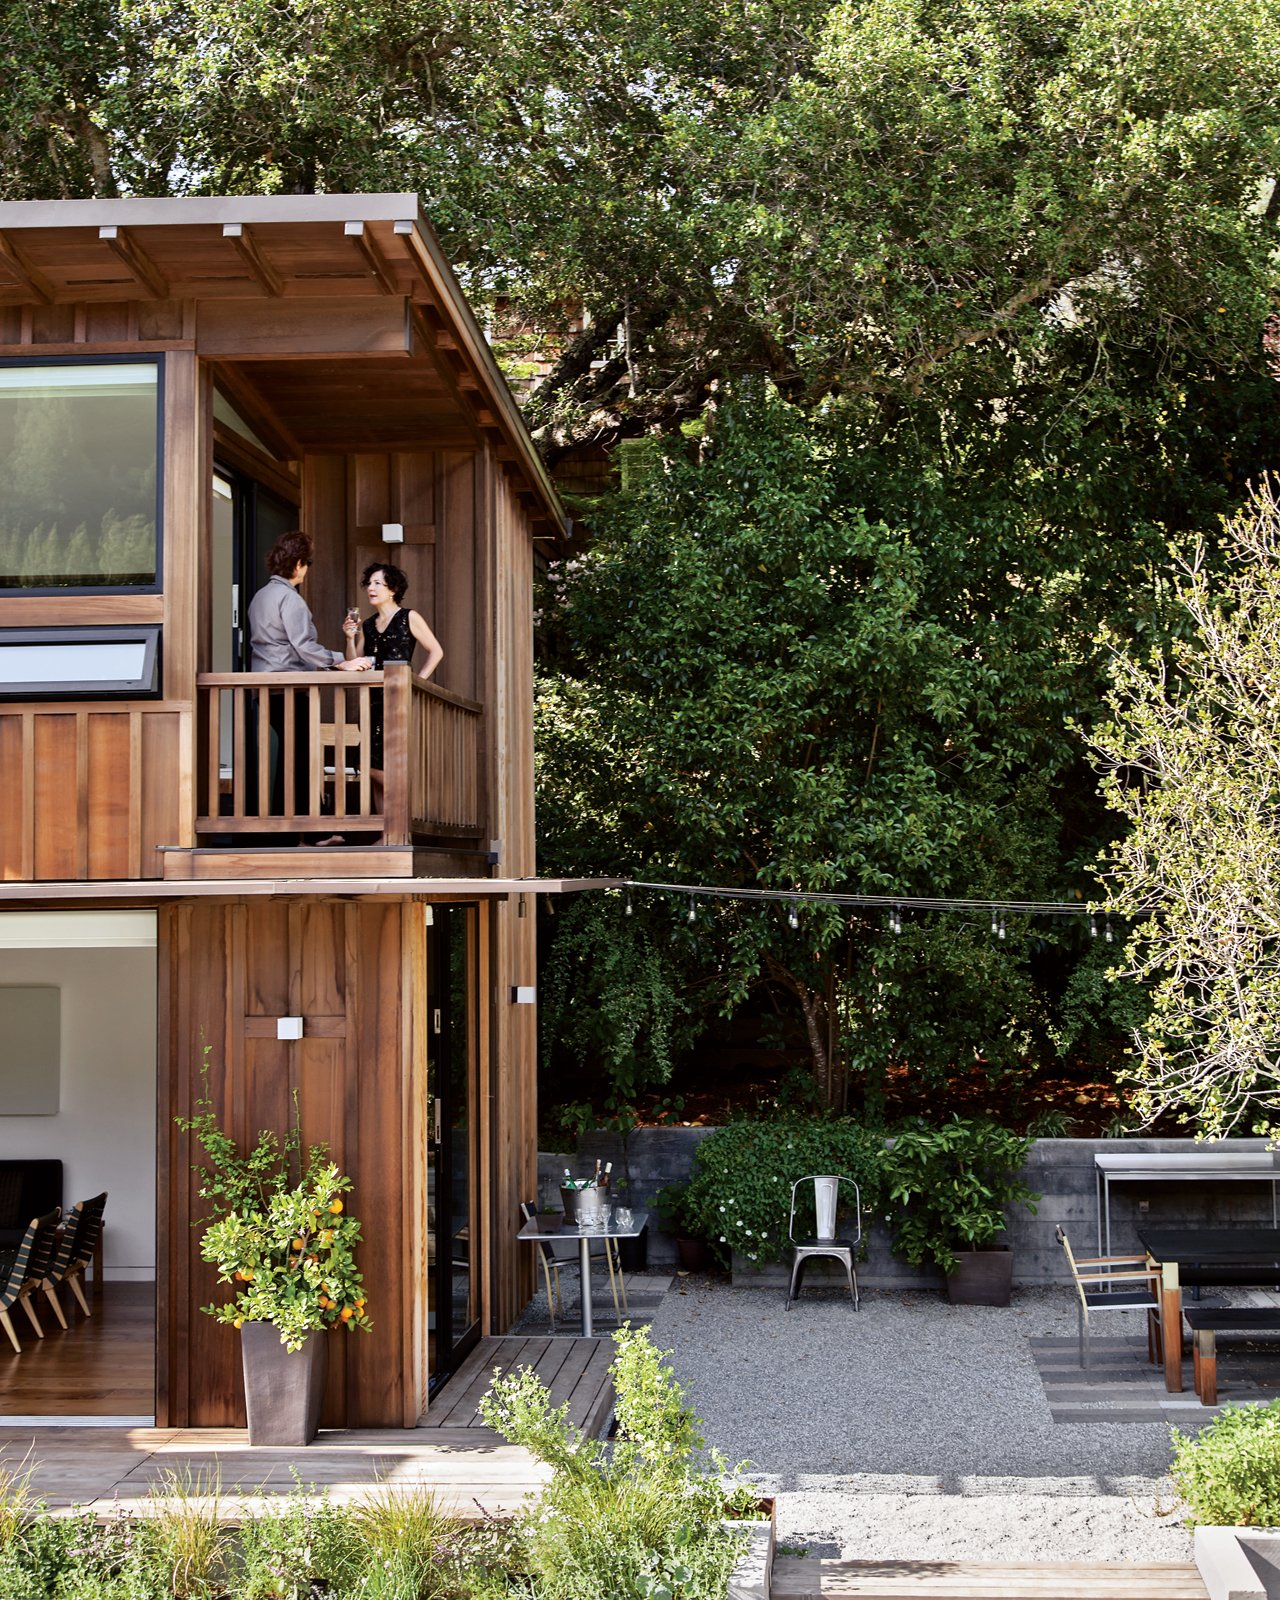 Articles about charming weekend cottage renovation marin on Dwell.com